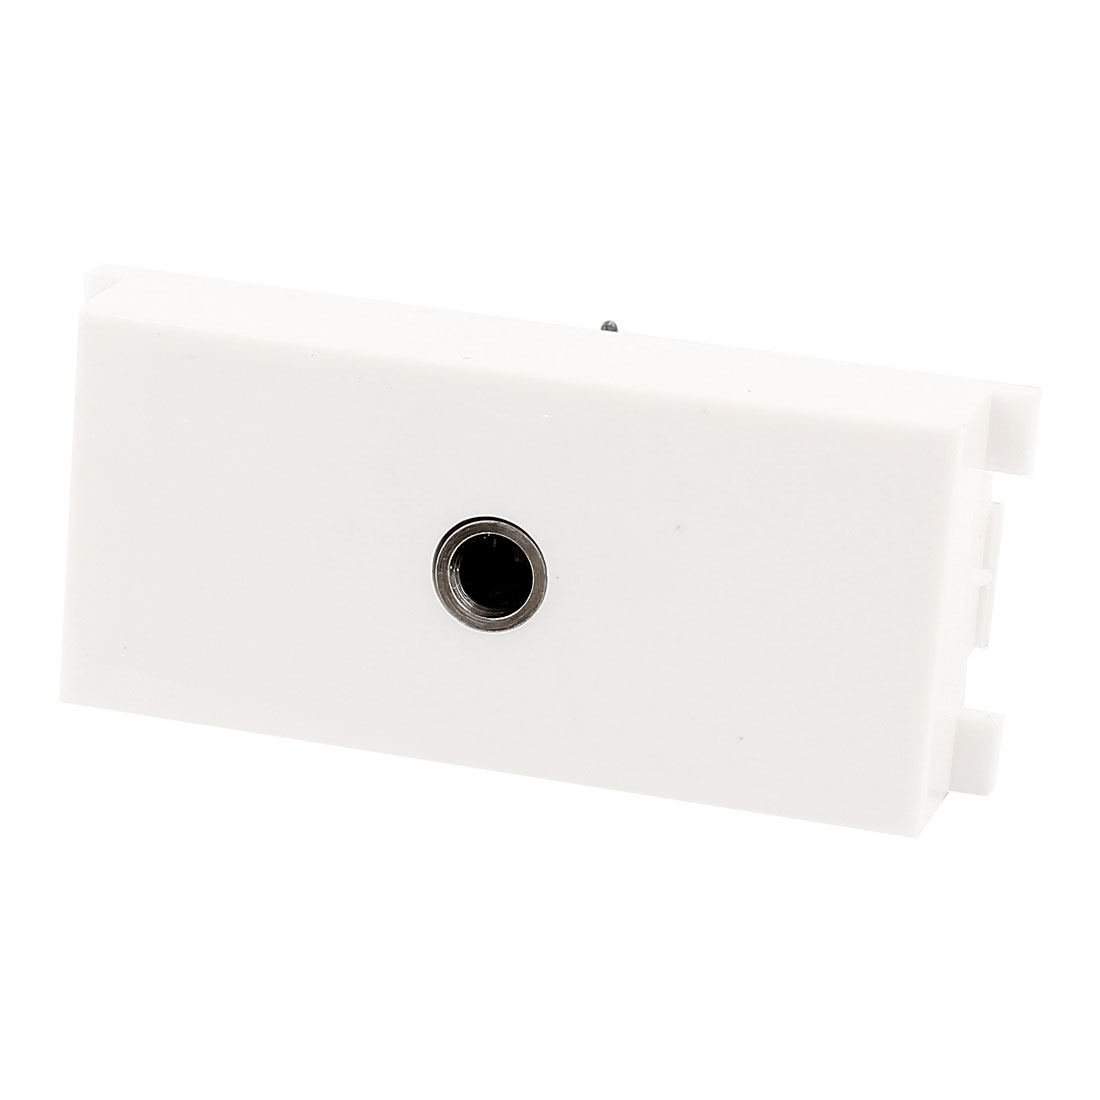 3.5mm Audio Female Jack Module Wall Plate Outlet Socket Adapter White